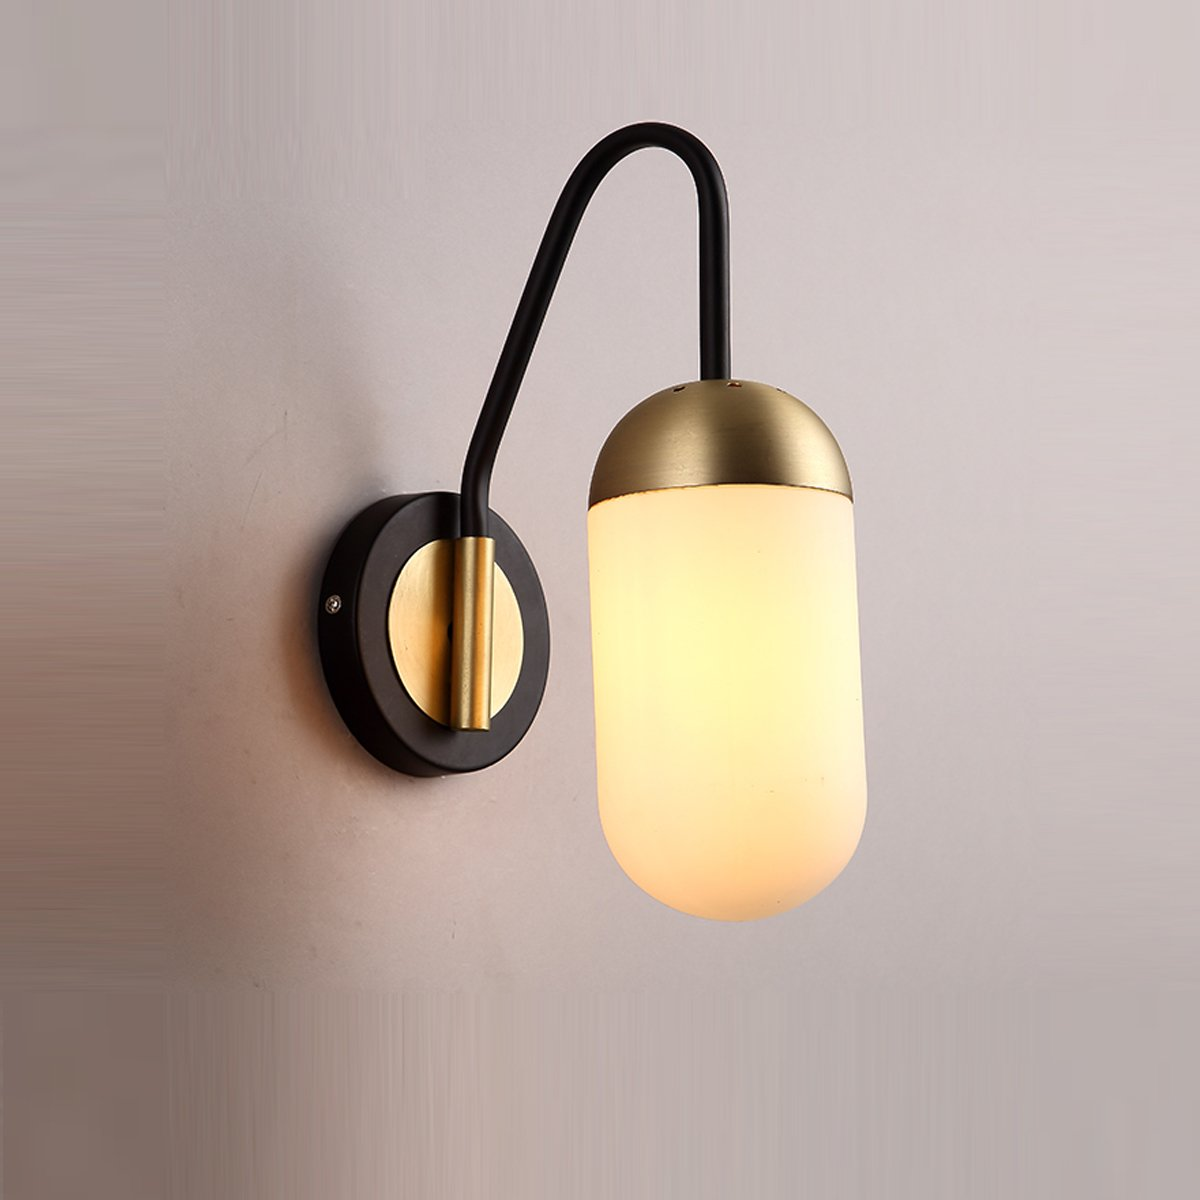 MASO HOME, Capsule shaped Wall Lamps. Wall Light, Wall Sconce, and ...